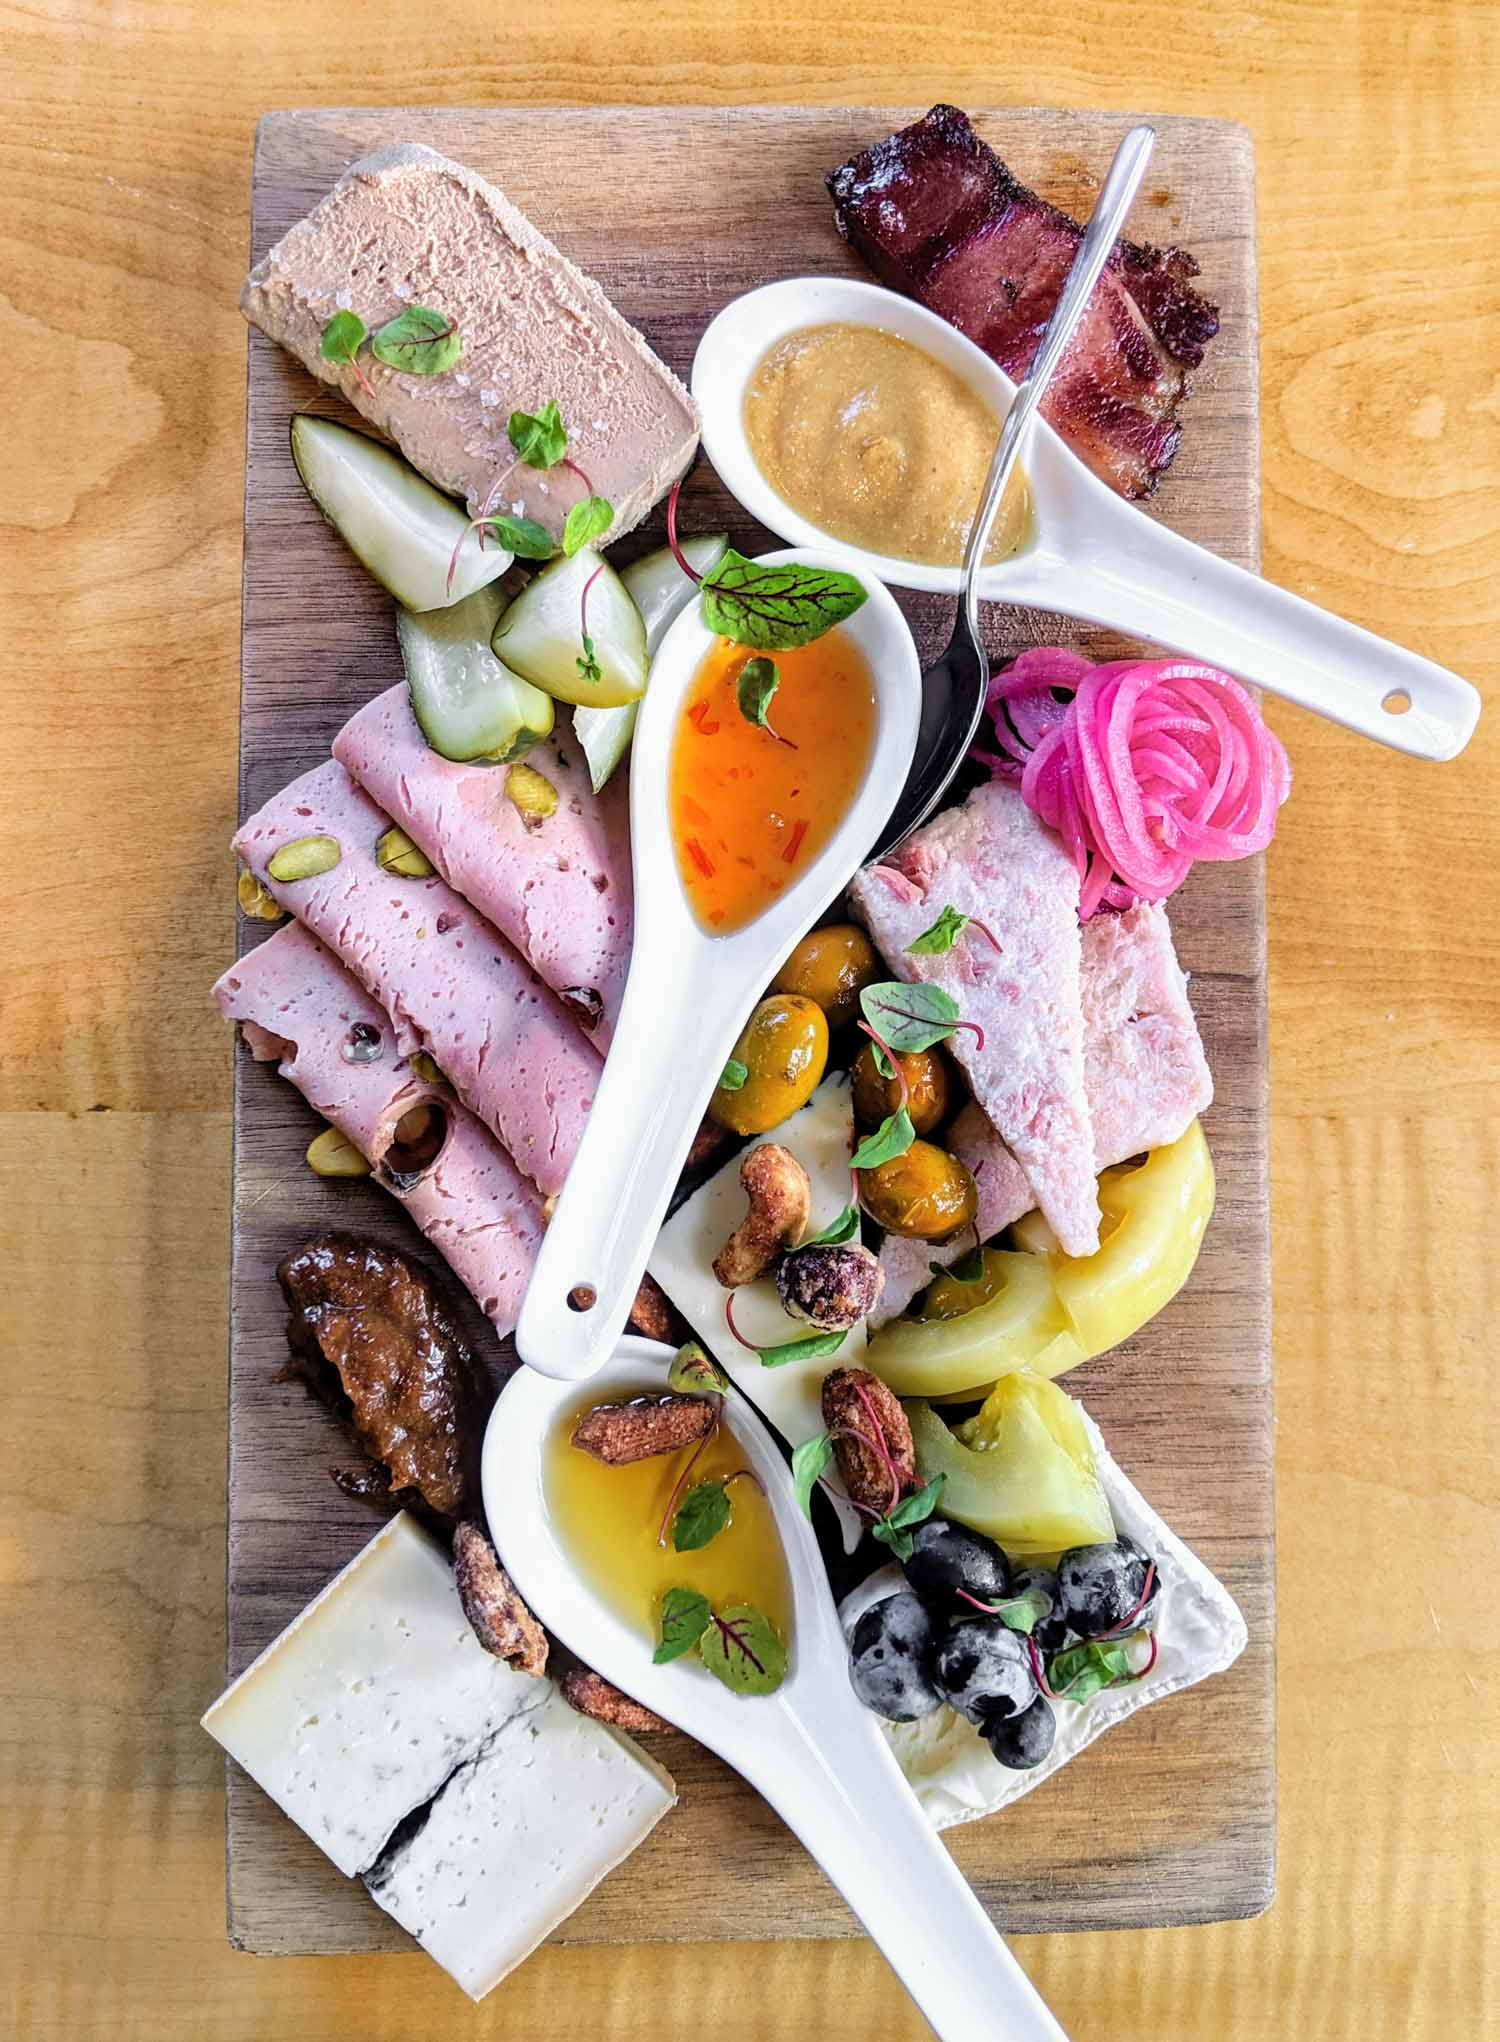 Charcuterie board from Le Caveau, the Domaine de Grand Pre winery, a stop on the Wolfville wine bus